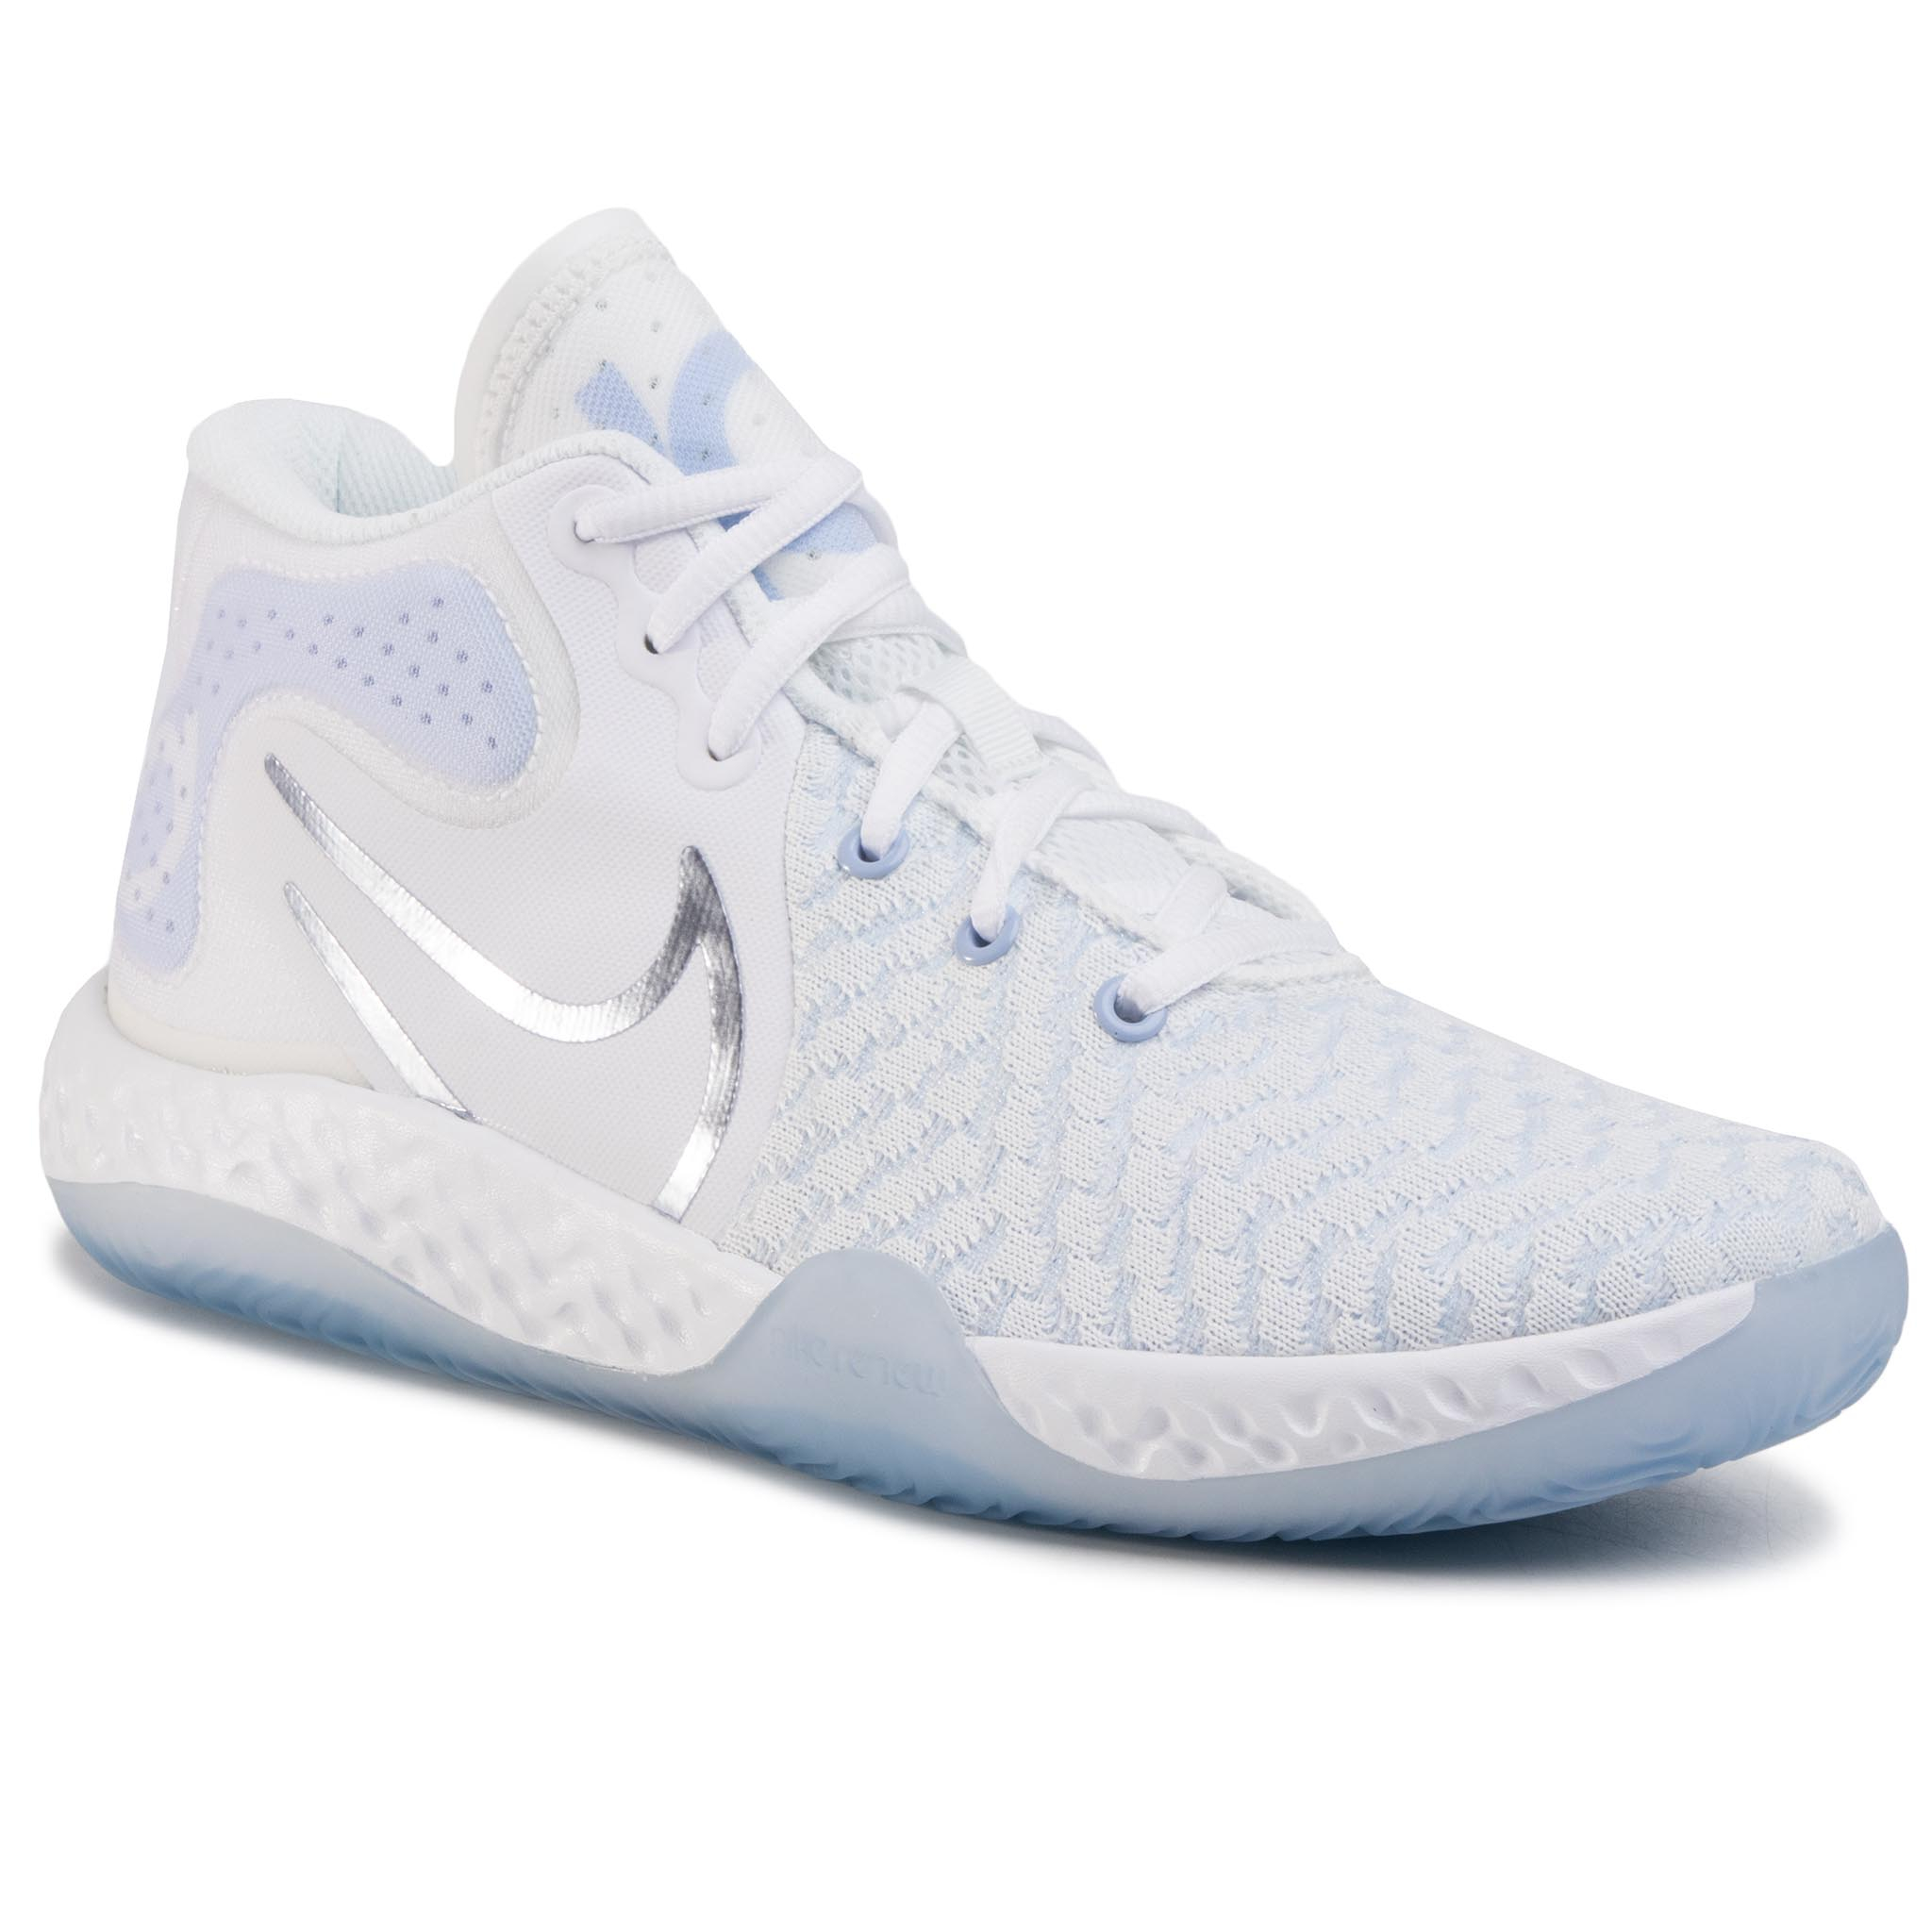 Pantofi Nike - Kd Trey 5 Viii Ck2090 100 White/Royal Tint imagine epantofi.ro 2021